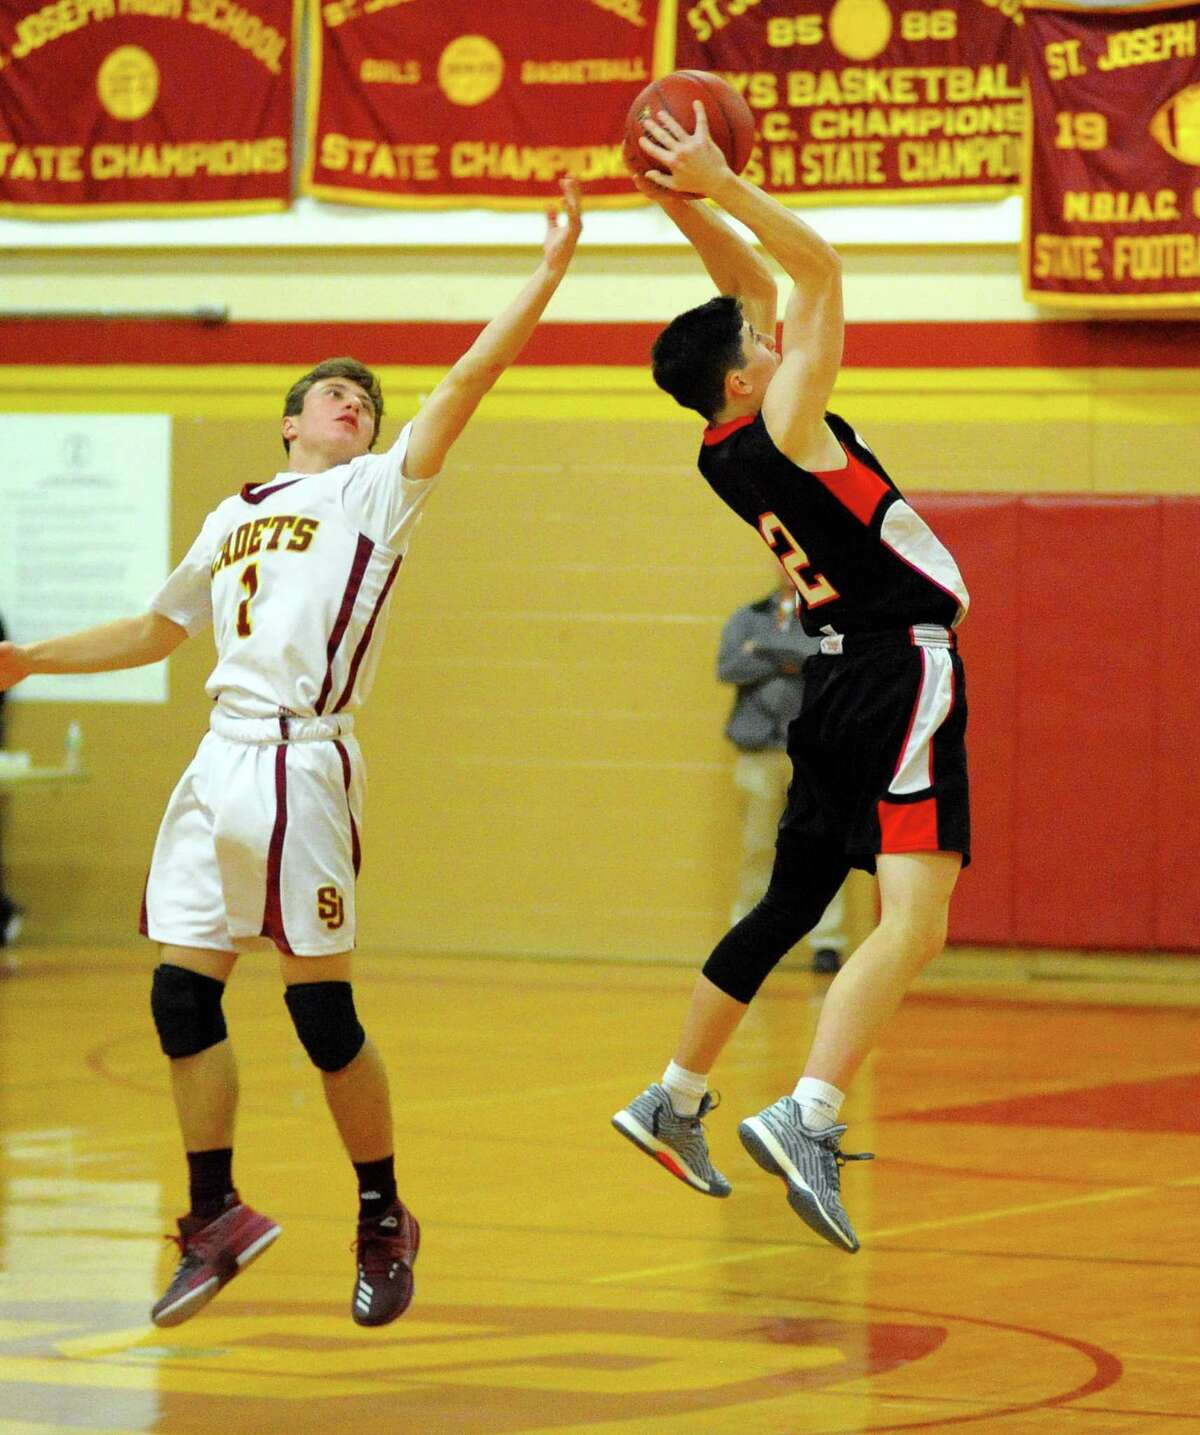 Fairfield Warde's Daniel Fitzpatrick, right, intercepts a pass sent to St. Joseph's Ace Luzietti during basketball action in Trumbull, Conn., on Tuesday Jan. 9, 2018.